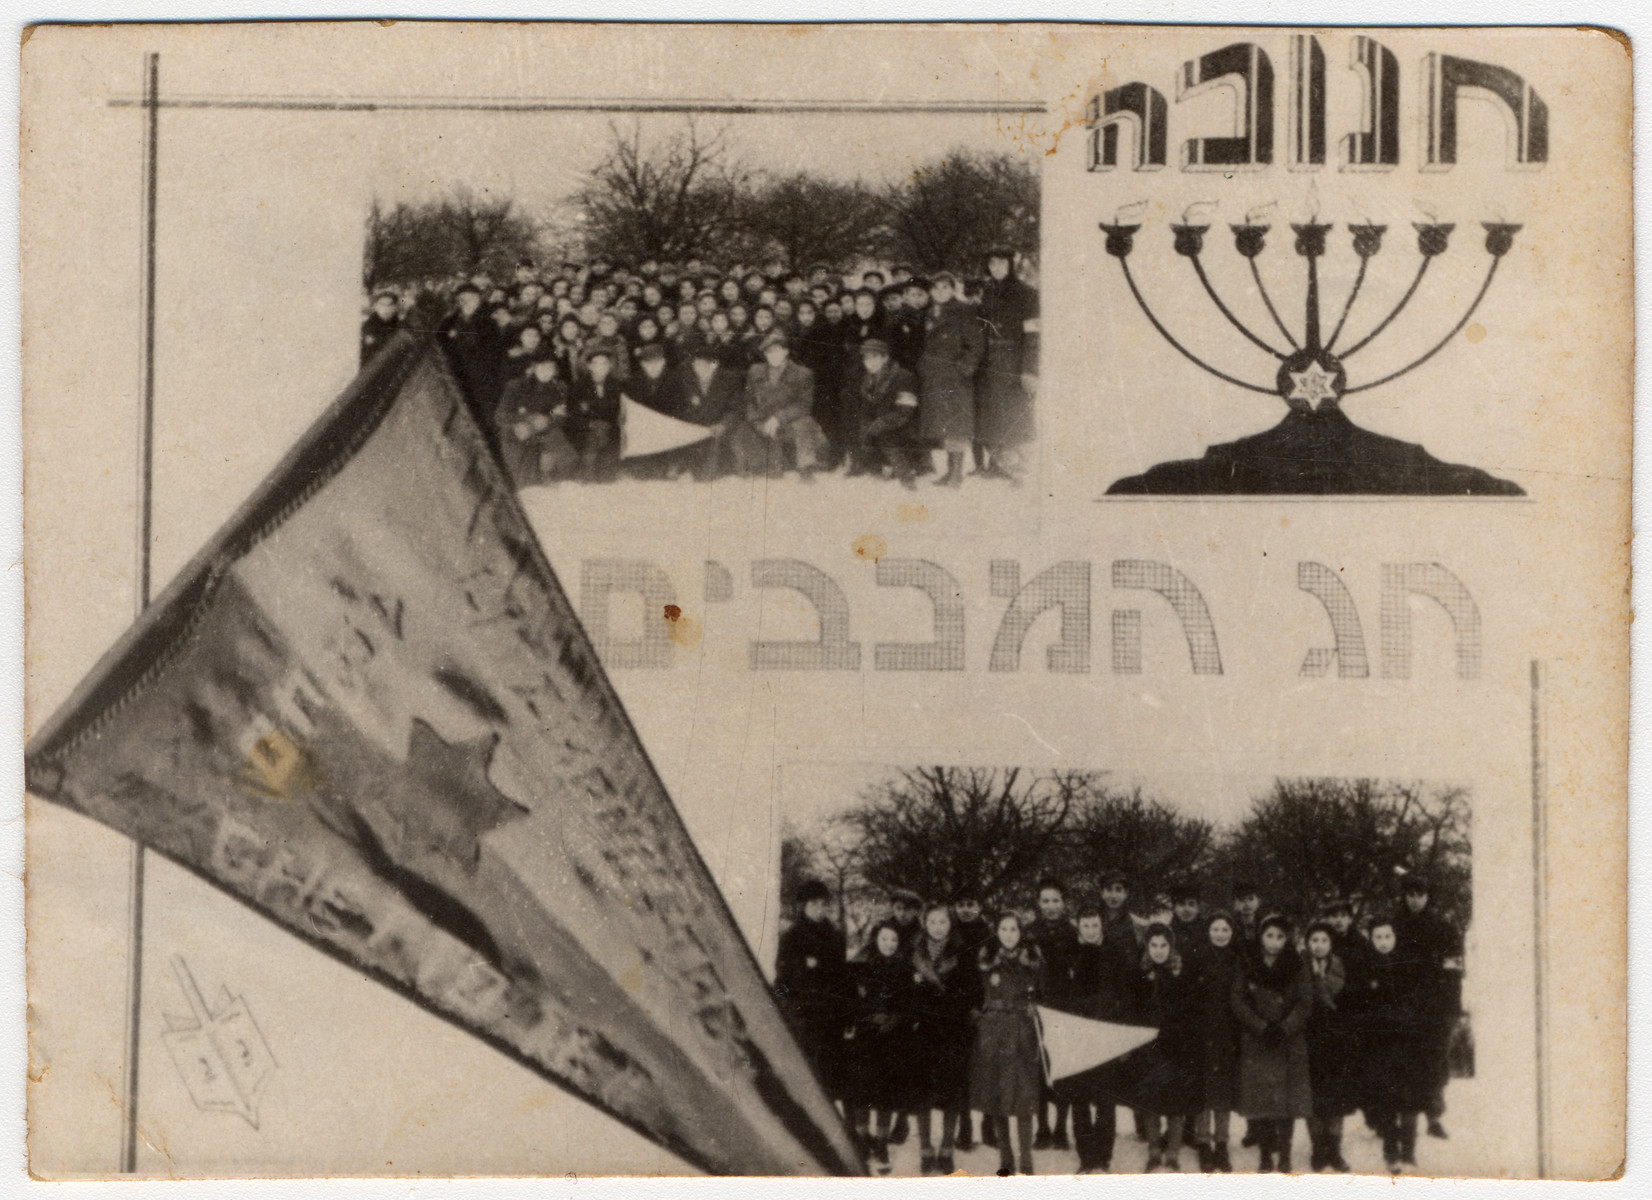 """A Hanukkah card created by members of the Hazit Dor Bnei Midbar (The Front of the Wilderness Generation) Zionist Youth movement in the Lodz ghetto.  The sign reads """"Hanukkah, the holiday of the Maccabees."""""""